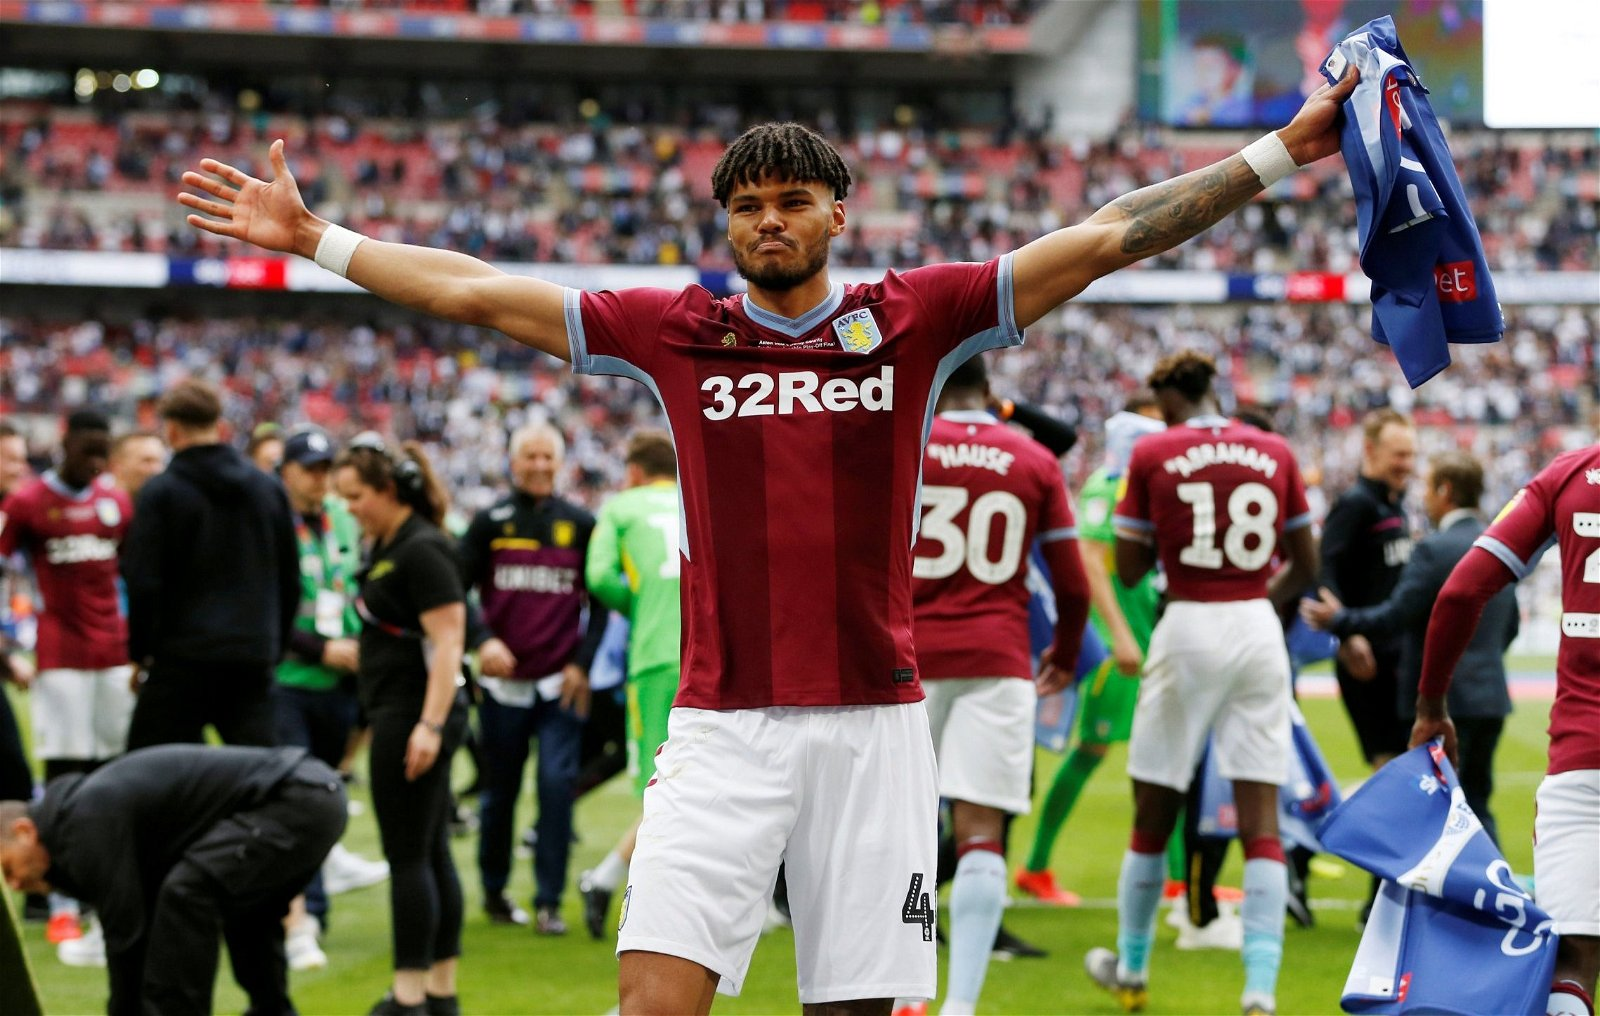 Tyrone Mings Aston Villa e1559225248988 - Aston Villa could go straight back down if they fail to address three problem areas - opinion